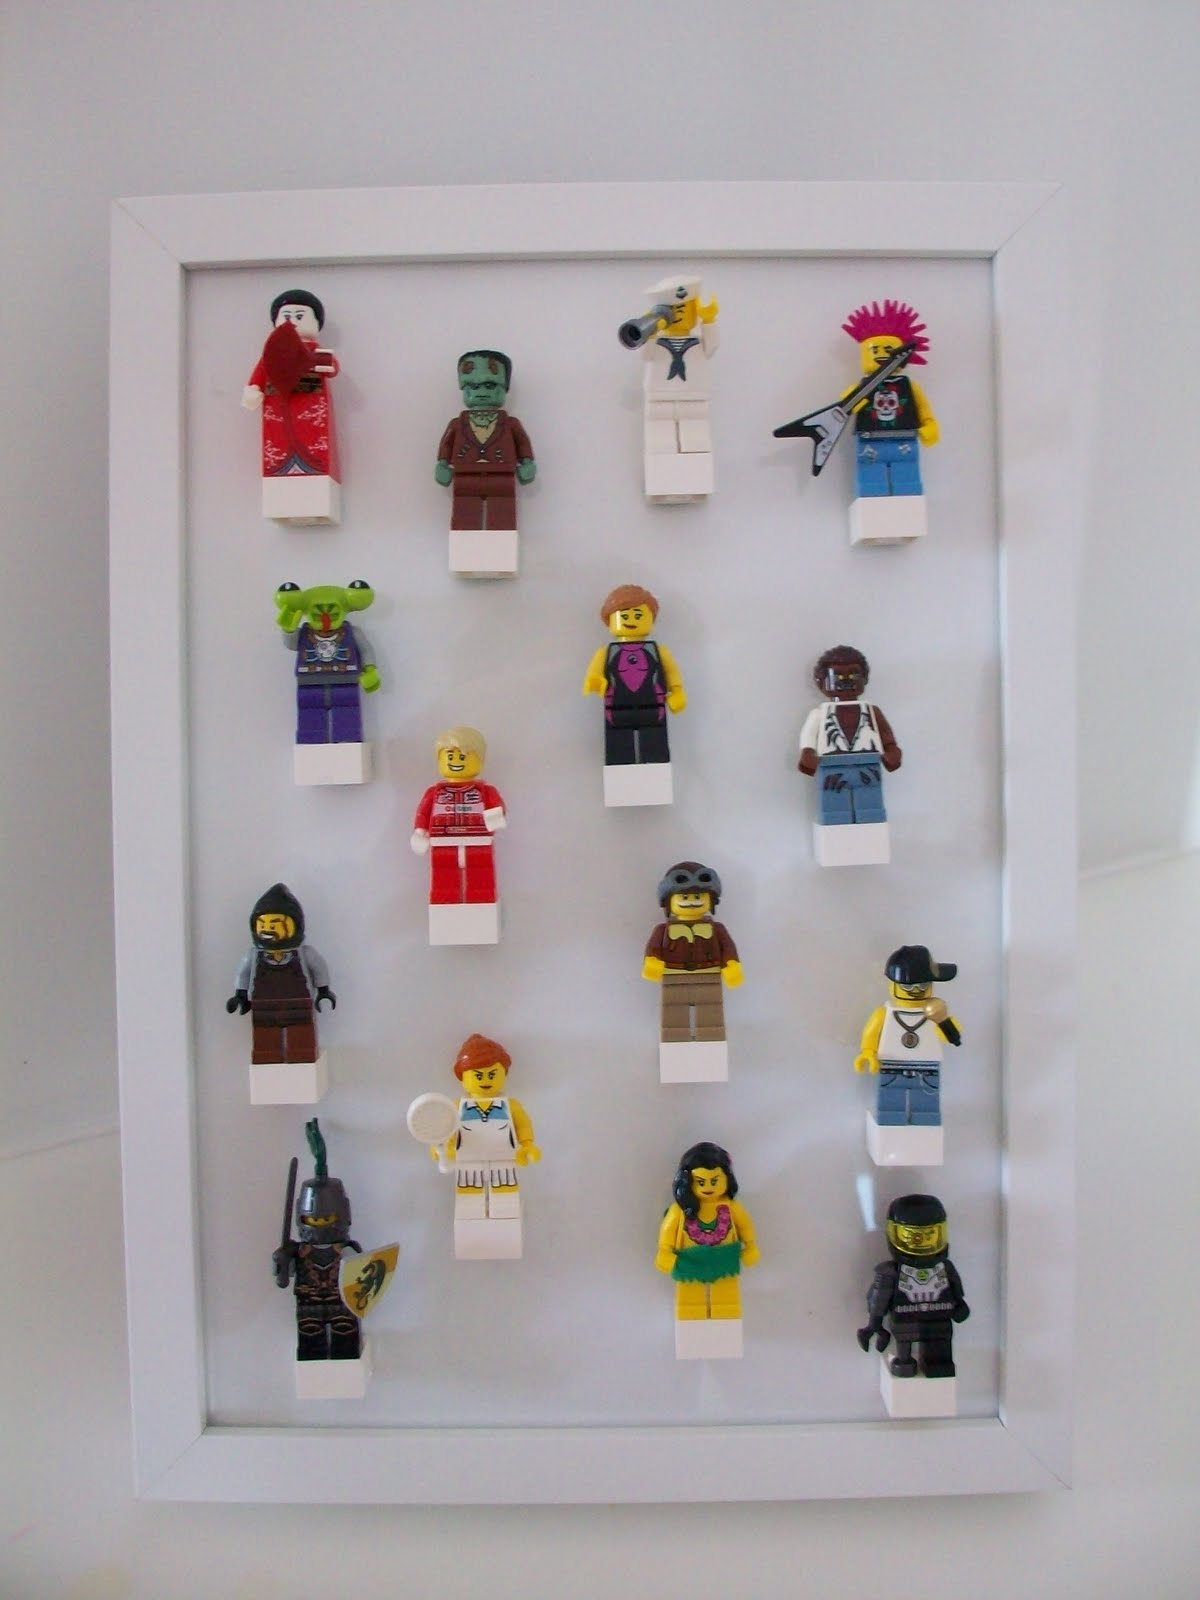 Completed Lego Storage Display